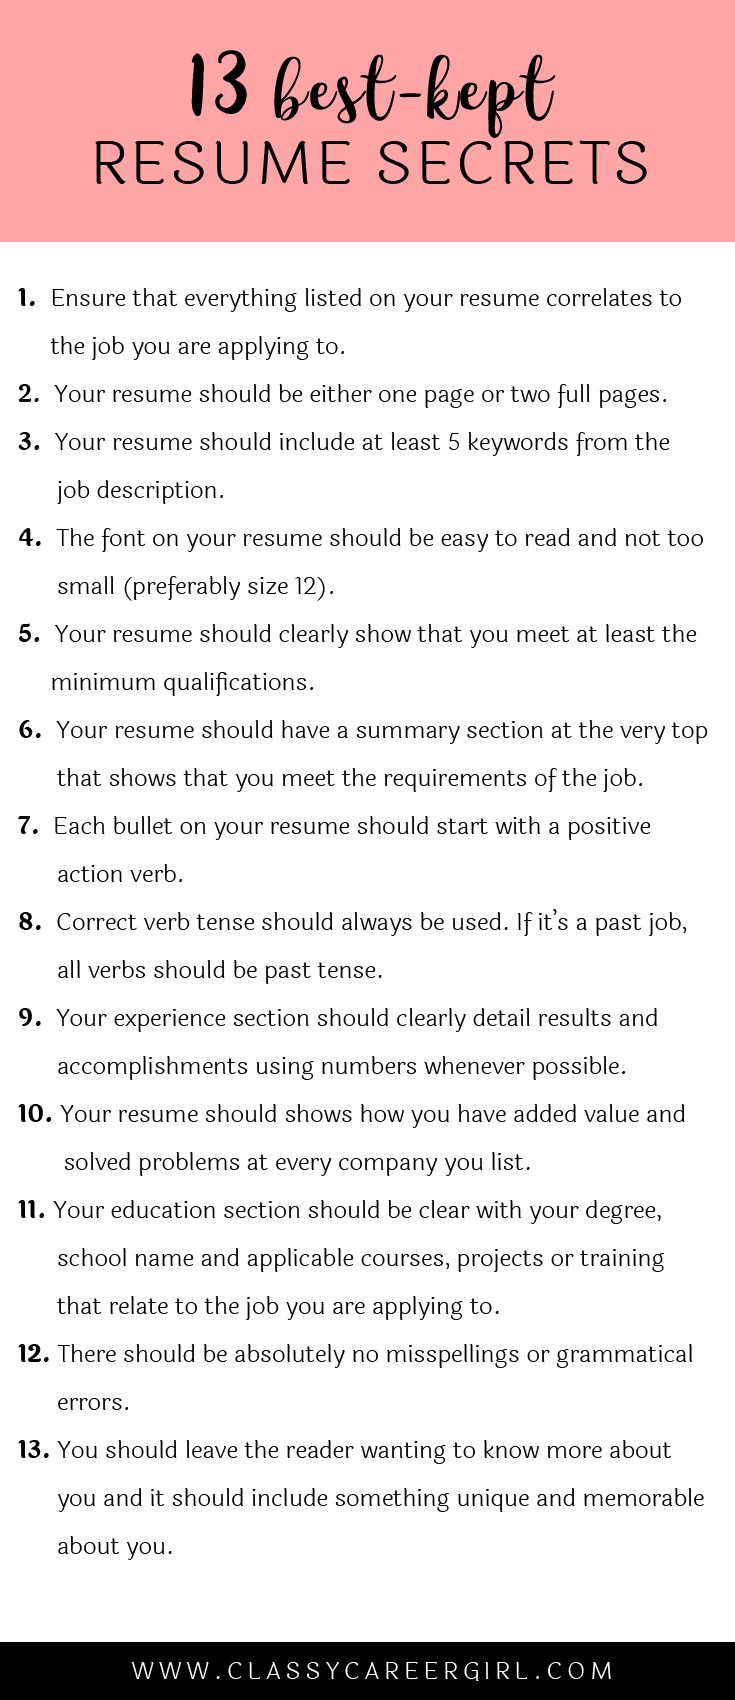 Opposenewapstandardsus  Remarkable  Ideas About Resume On Pinterest  Cv Format Resume Cv And  With Heavenly Some Hiring Managers Will Toss Your Resume Out If You Dont Know These  With Agreeable Resumes  Also Job Resumes In Addition Easy Resume Builder And Social Work Resume As Well As Accounts Payable Resume Additionally Real Estate Resume From Pinterestcom With Opposenewapstandardsus  Heavenly  Ideas About Resume On Pinterest  Cv Format Resume Cv And  With Agreeable Some Hiring Managers Will Toss Your Resume Out If You Dont Know These  And Remarkable Resumes  Also Job Resumes In Addition Easy Resume Builder From Pinterestcom